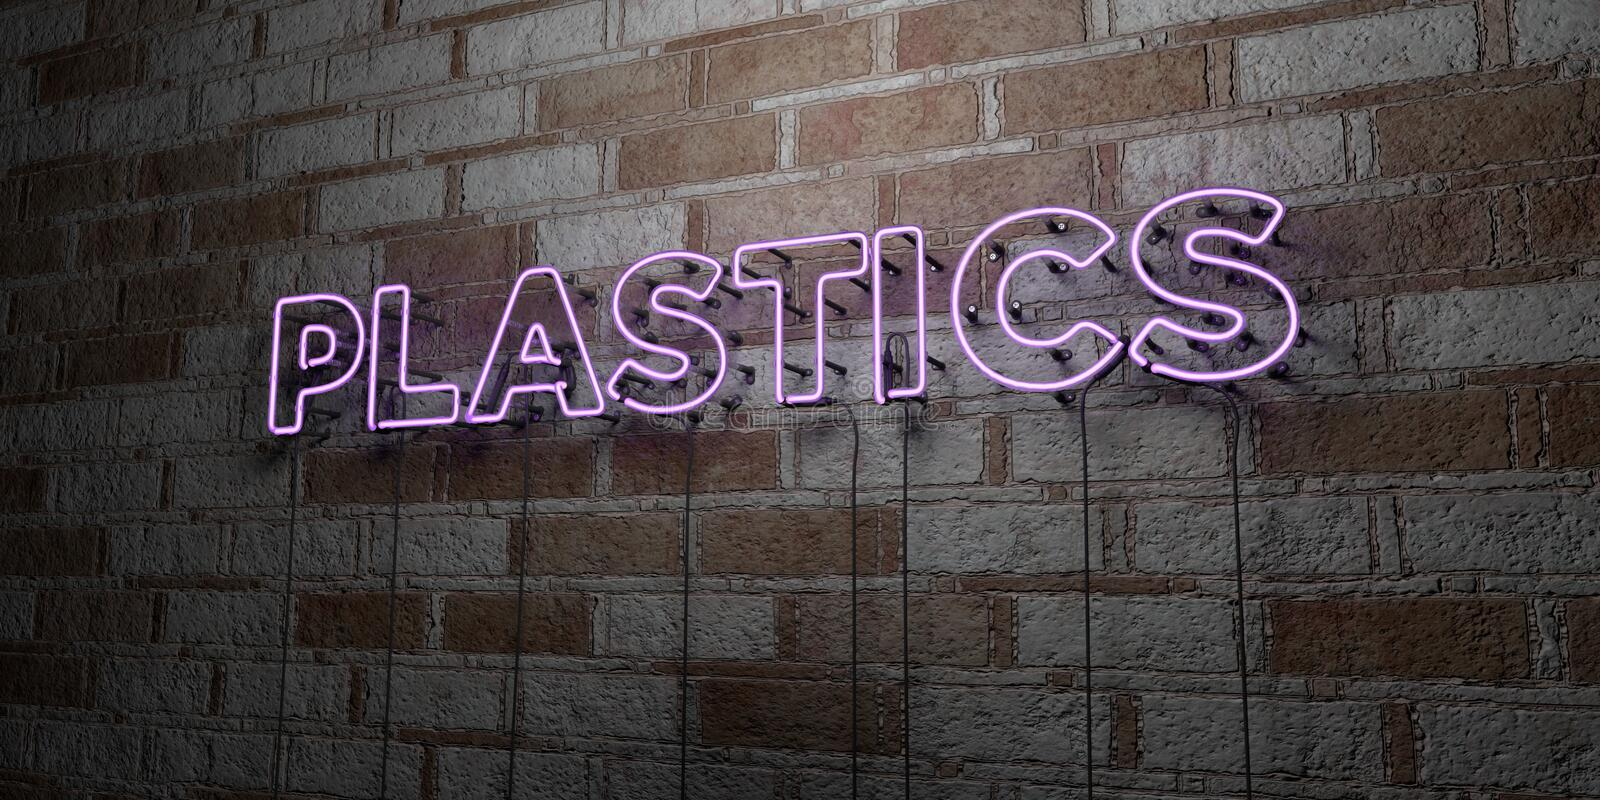 PLASTICS - Glowing Neon Sign on stonework wall - 3D rendered royalty free stock illustration. Can be used for online banner ads and direct mailers stock illustration